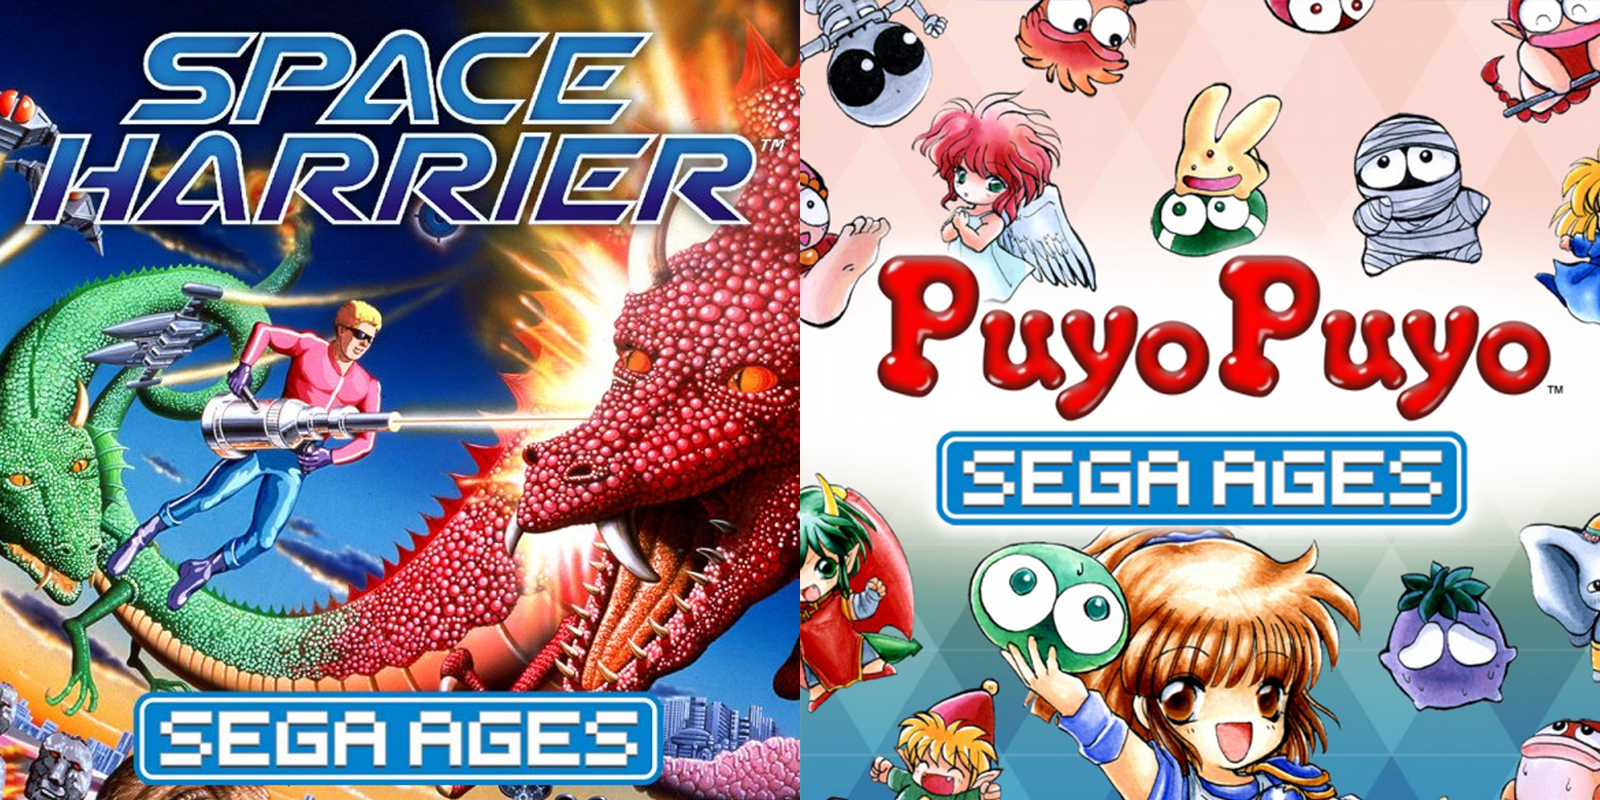 SEGA AGES Space Harrier e Puyo Puyo